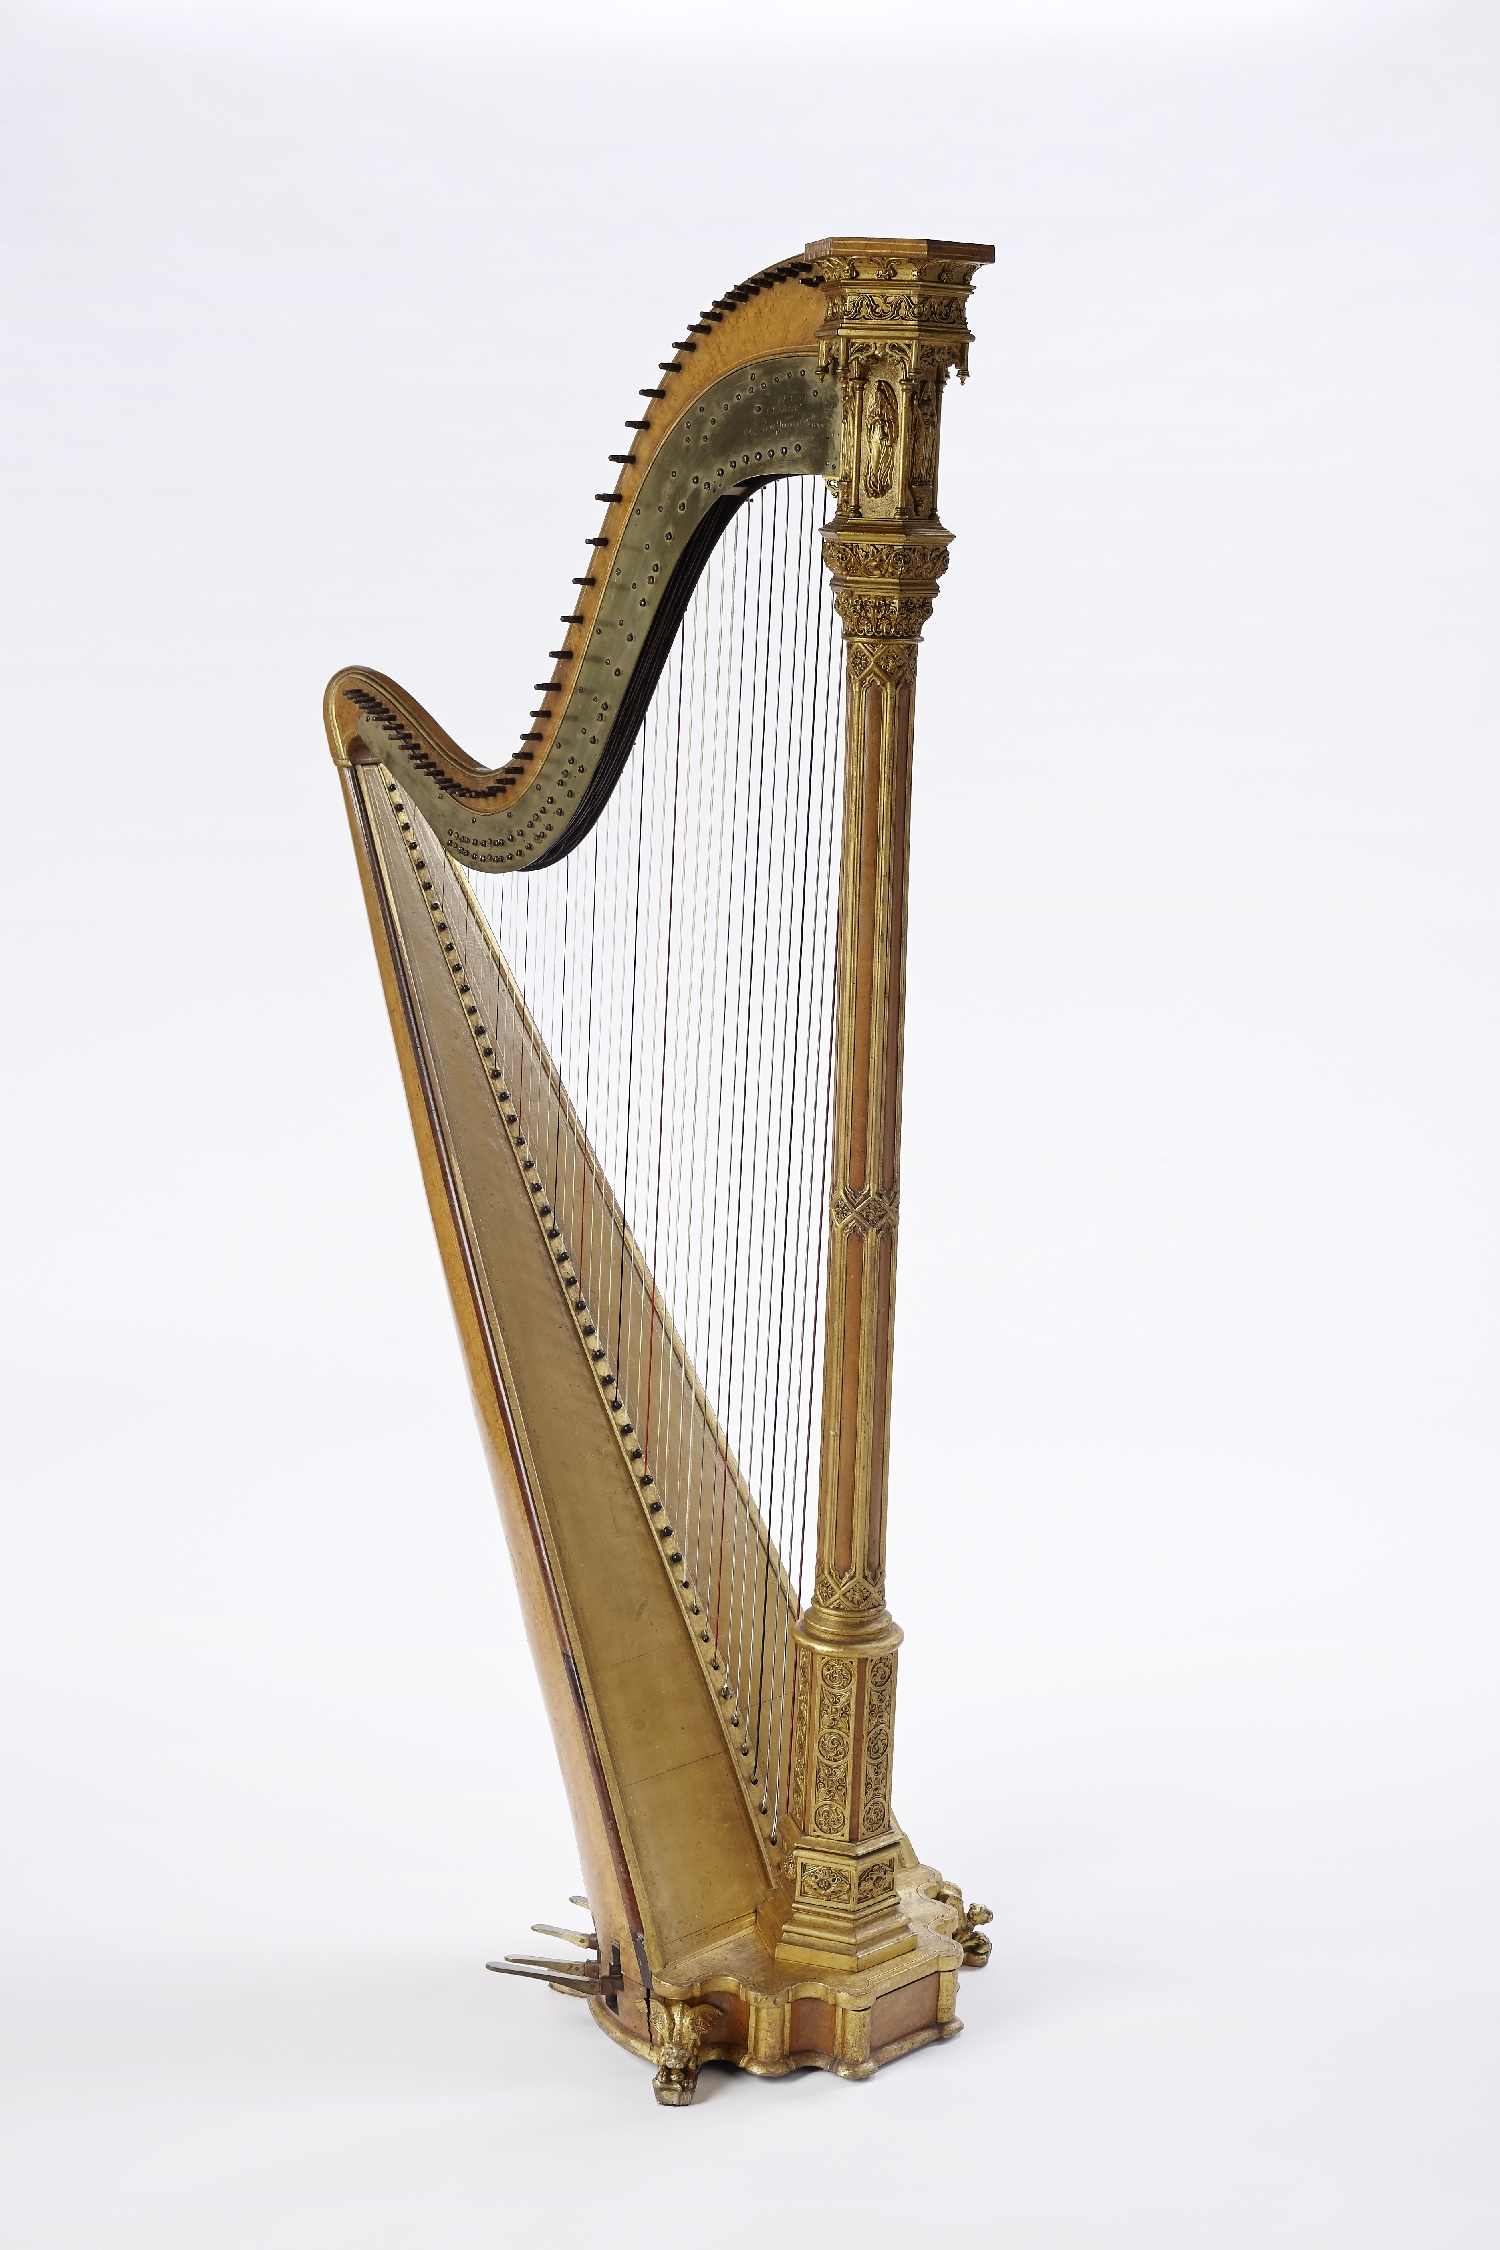 Double-action pedal harp owned by the harp virtuoso Maria Mösner, married Countess Spaur, Sébastien Érard, Paris, 2nd quarter 19th c., wood, metal, inv. no. MI 1314